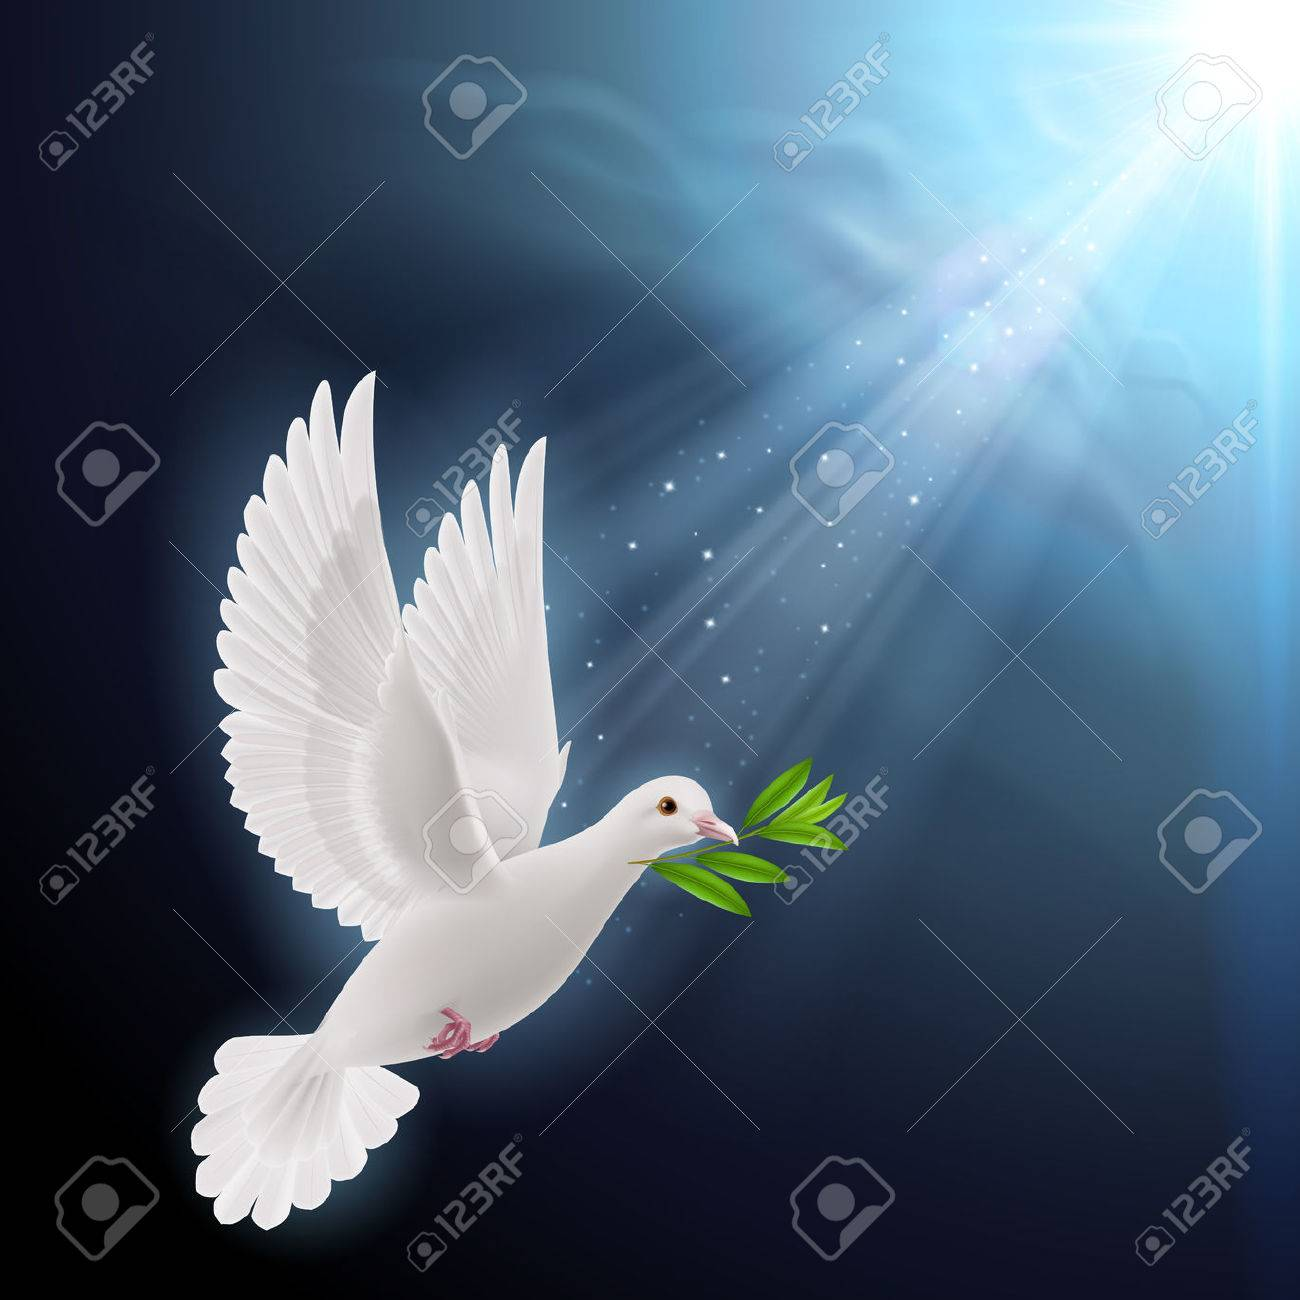 Bird of peace images stock pictures royalty free bird of peace dove of peace flying with a green twig after flood on a dark background buycottarizona